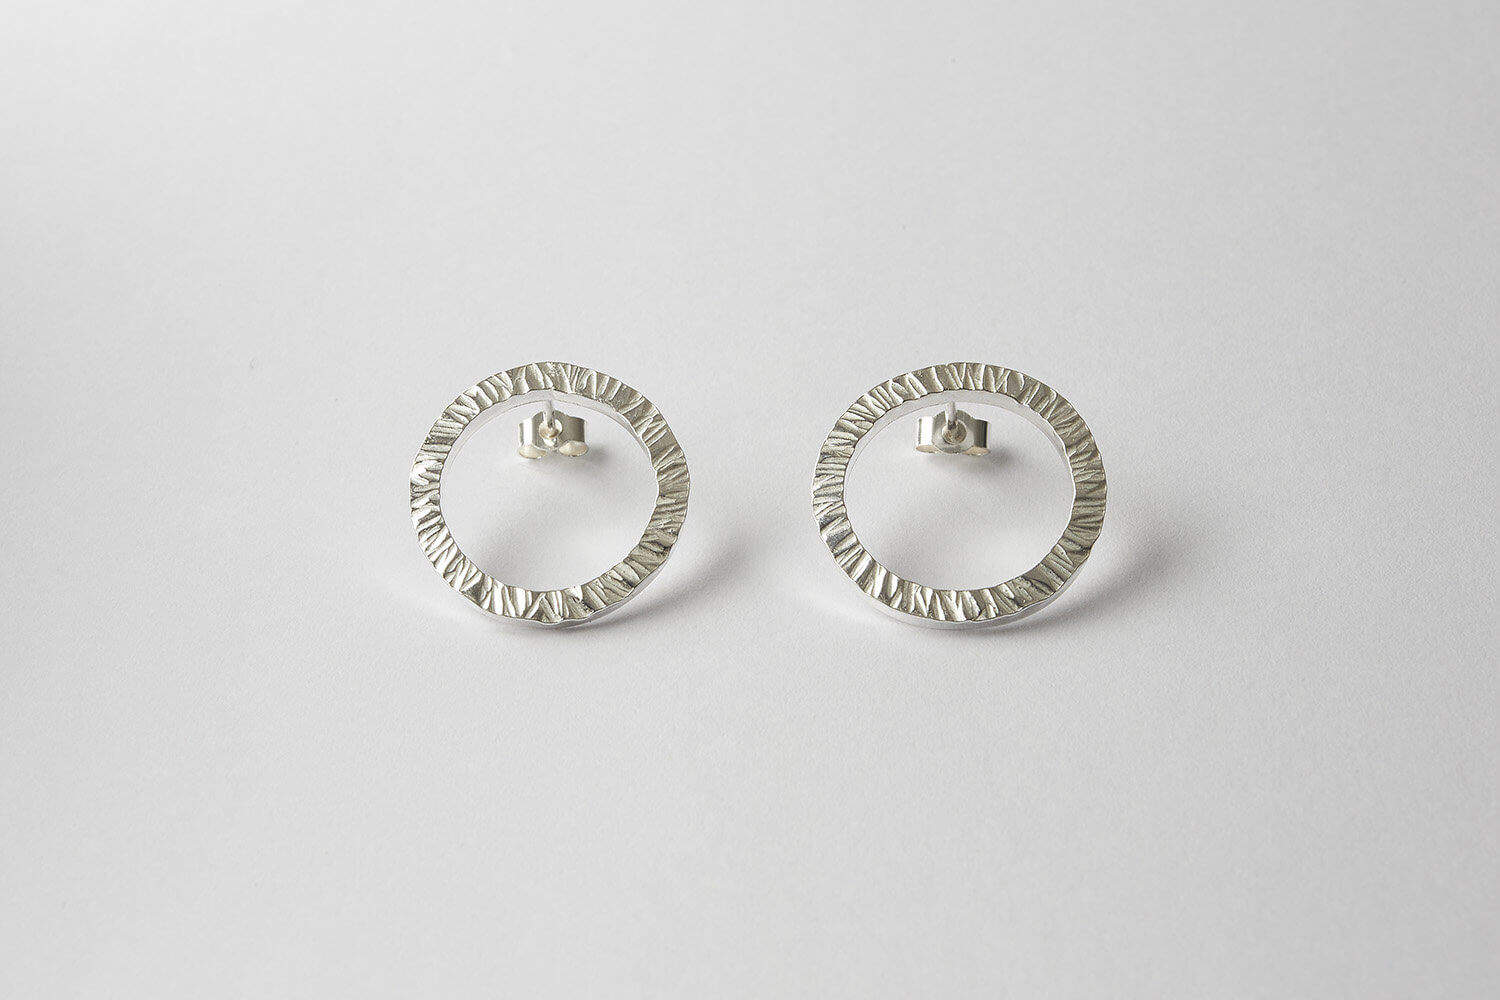 Silver drop earrings jewellery product photography for Janet Leitch jewellery